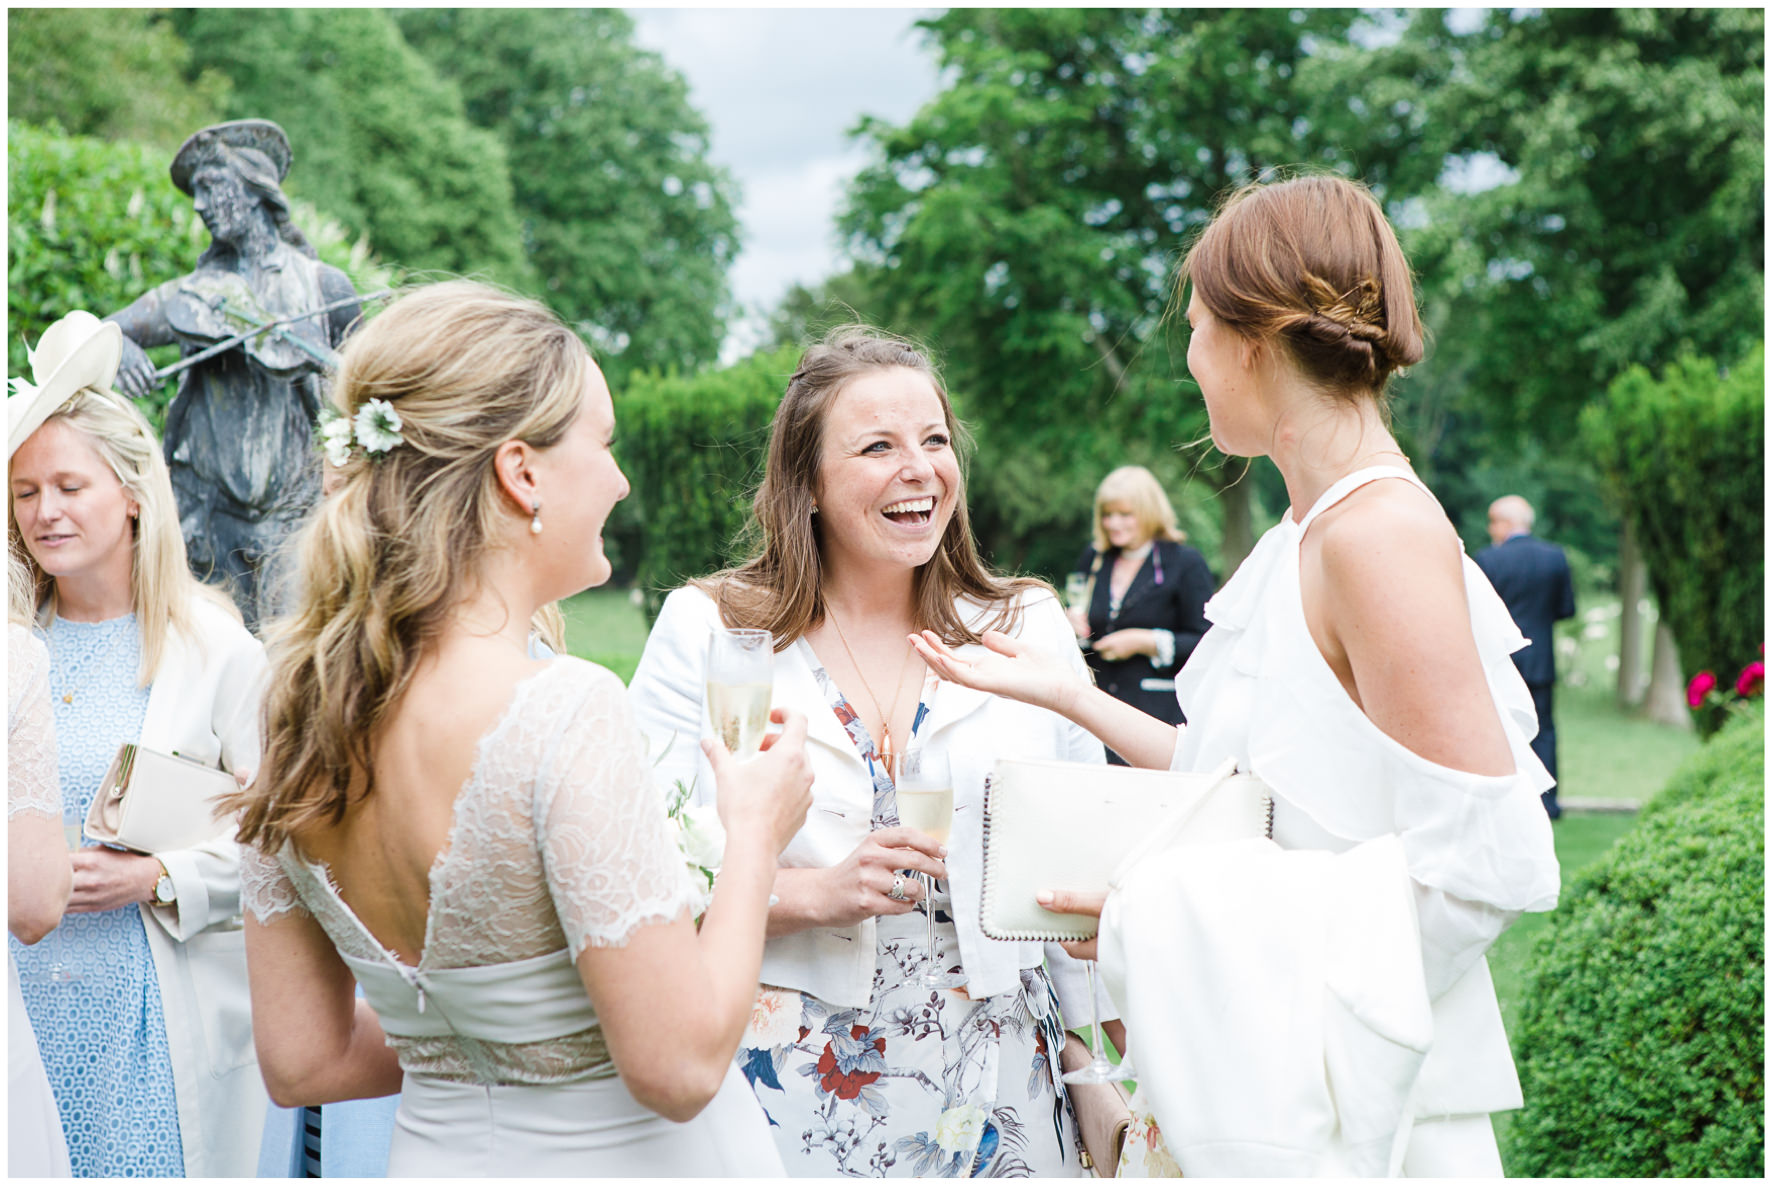 Lucy Davenport Photography, Cornwell Manor, wedding venue, Oxfordshire, Cotswold wedding, wedding guests, drinks reception